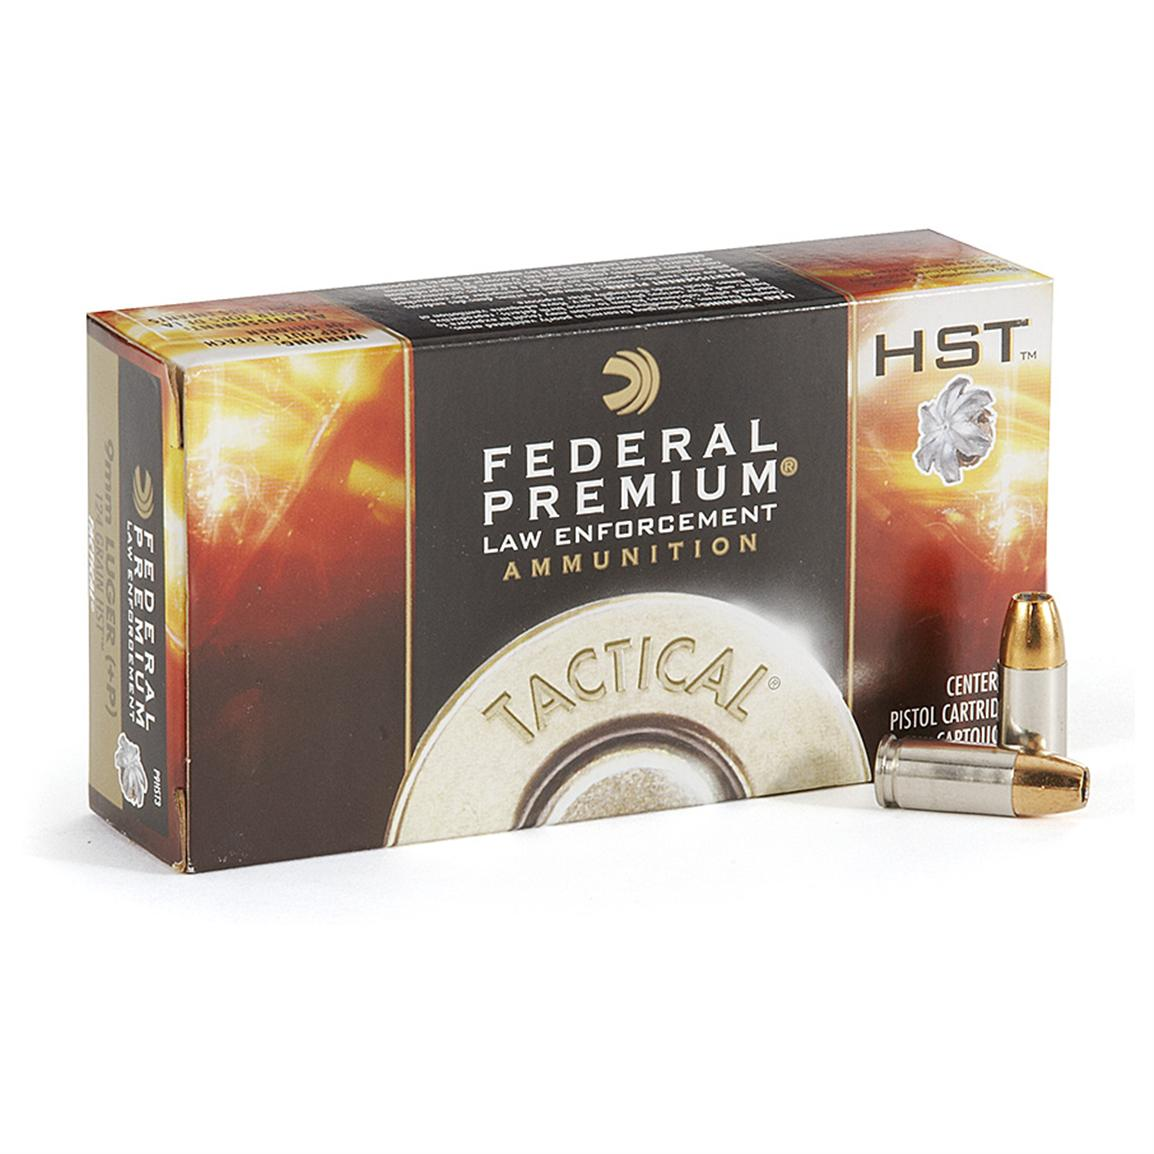 Federal, 9mm +P, HST HP, 124 Grain, 500 Rounds